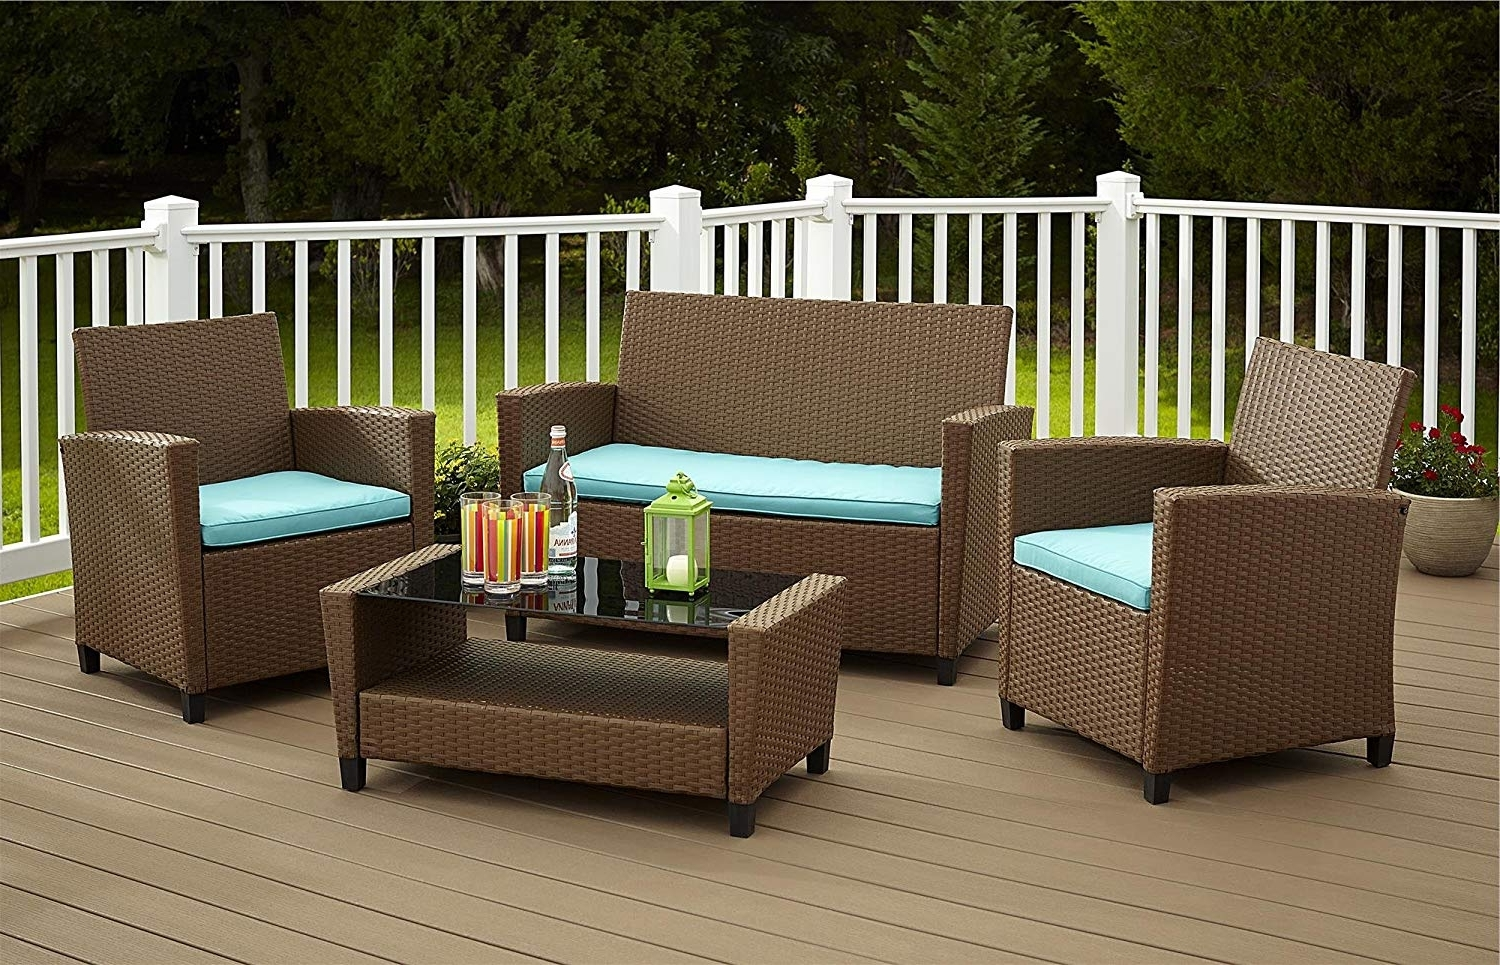 Terrific Resin Outdoor Furniture Amazon Com Cosco Products 4 Piece Regarding Most Recently Released Resin Conversation Patio Sets (View 14 of 15)